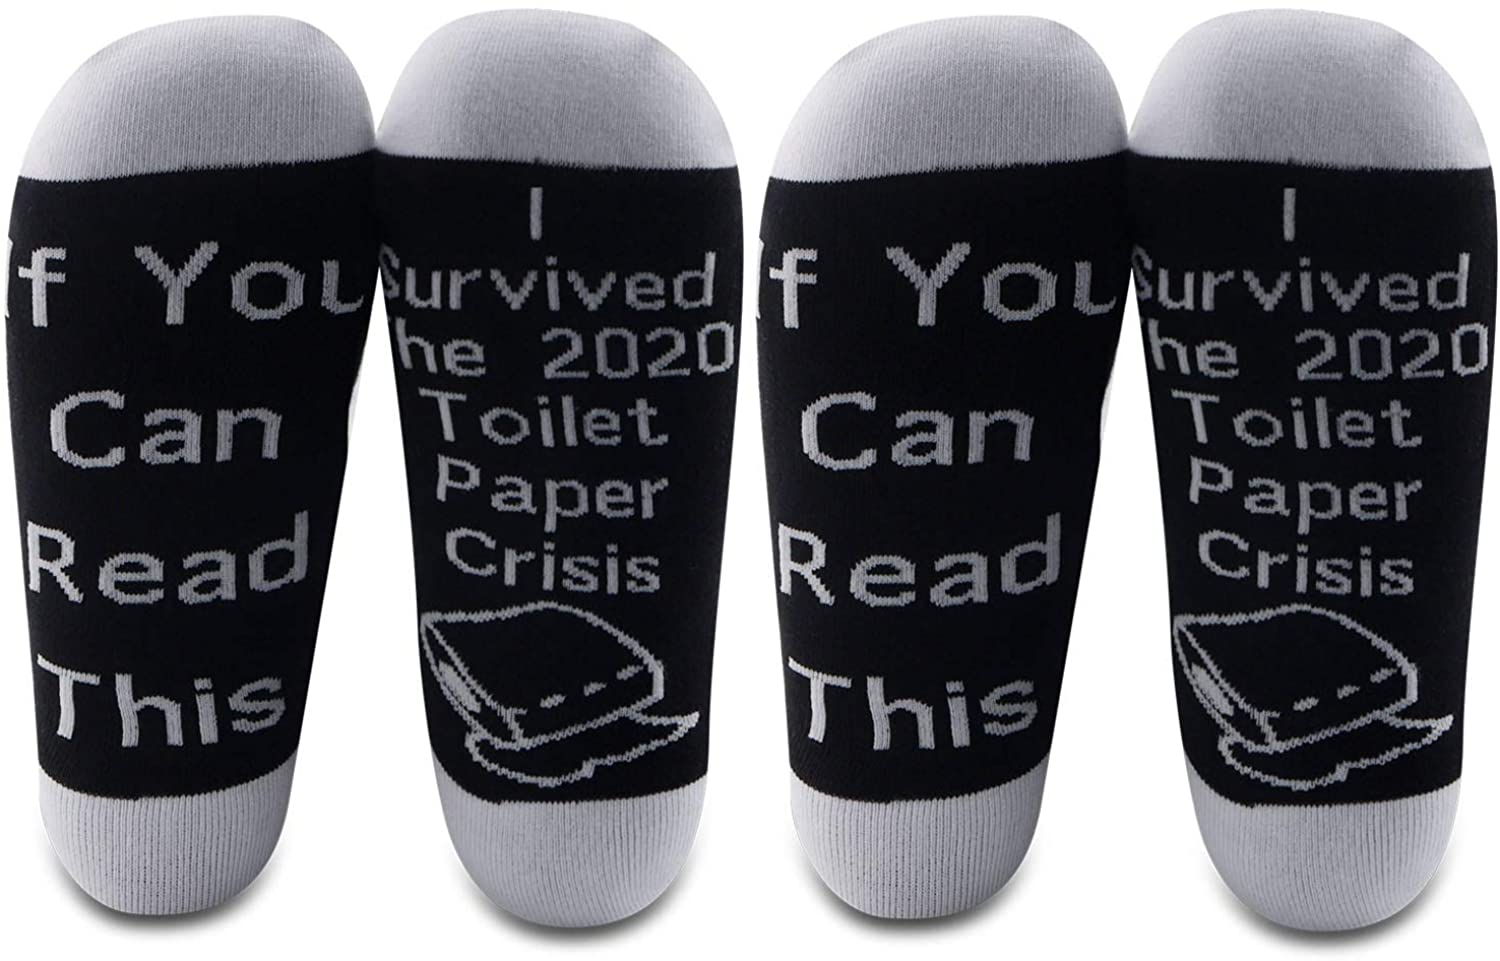 G2TUP 2 Pairs Quarantined 2020 Gift Toilet Paper Socks Social Distancing Corona Jokes I Survived The 2020 Toilet Paper Crisis